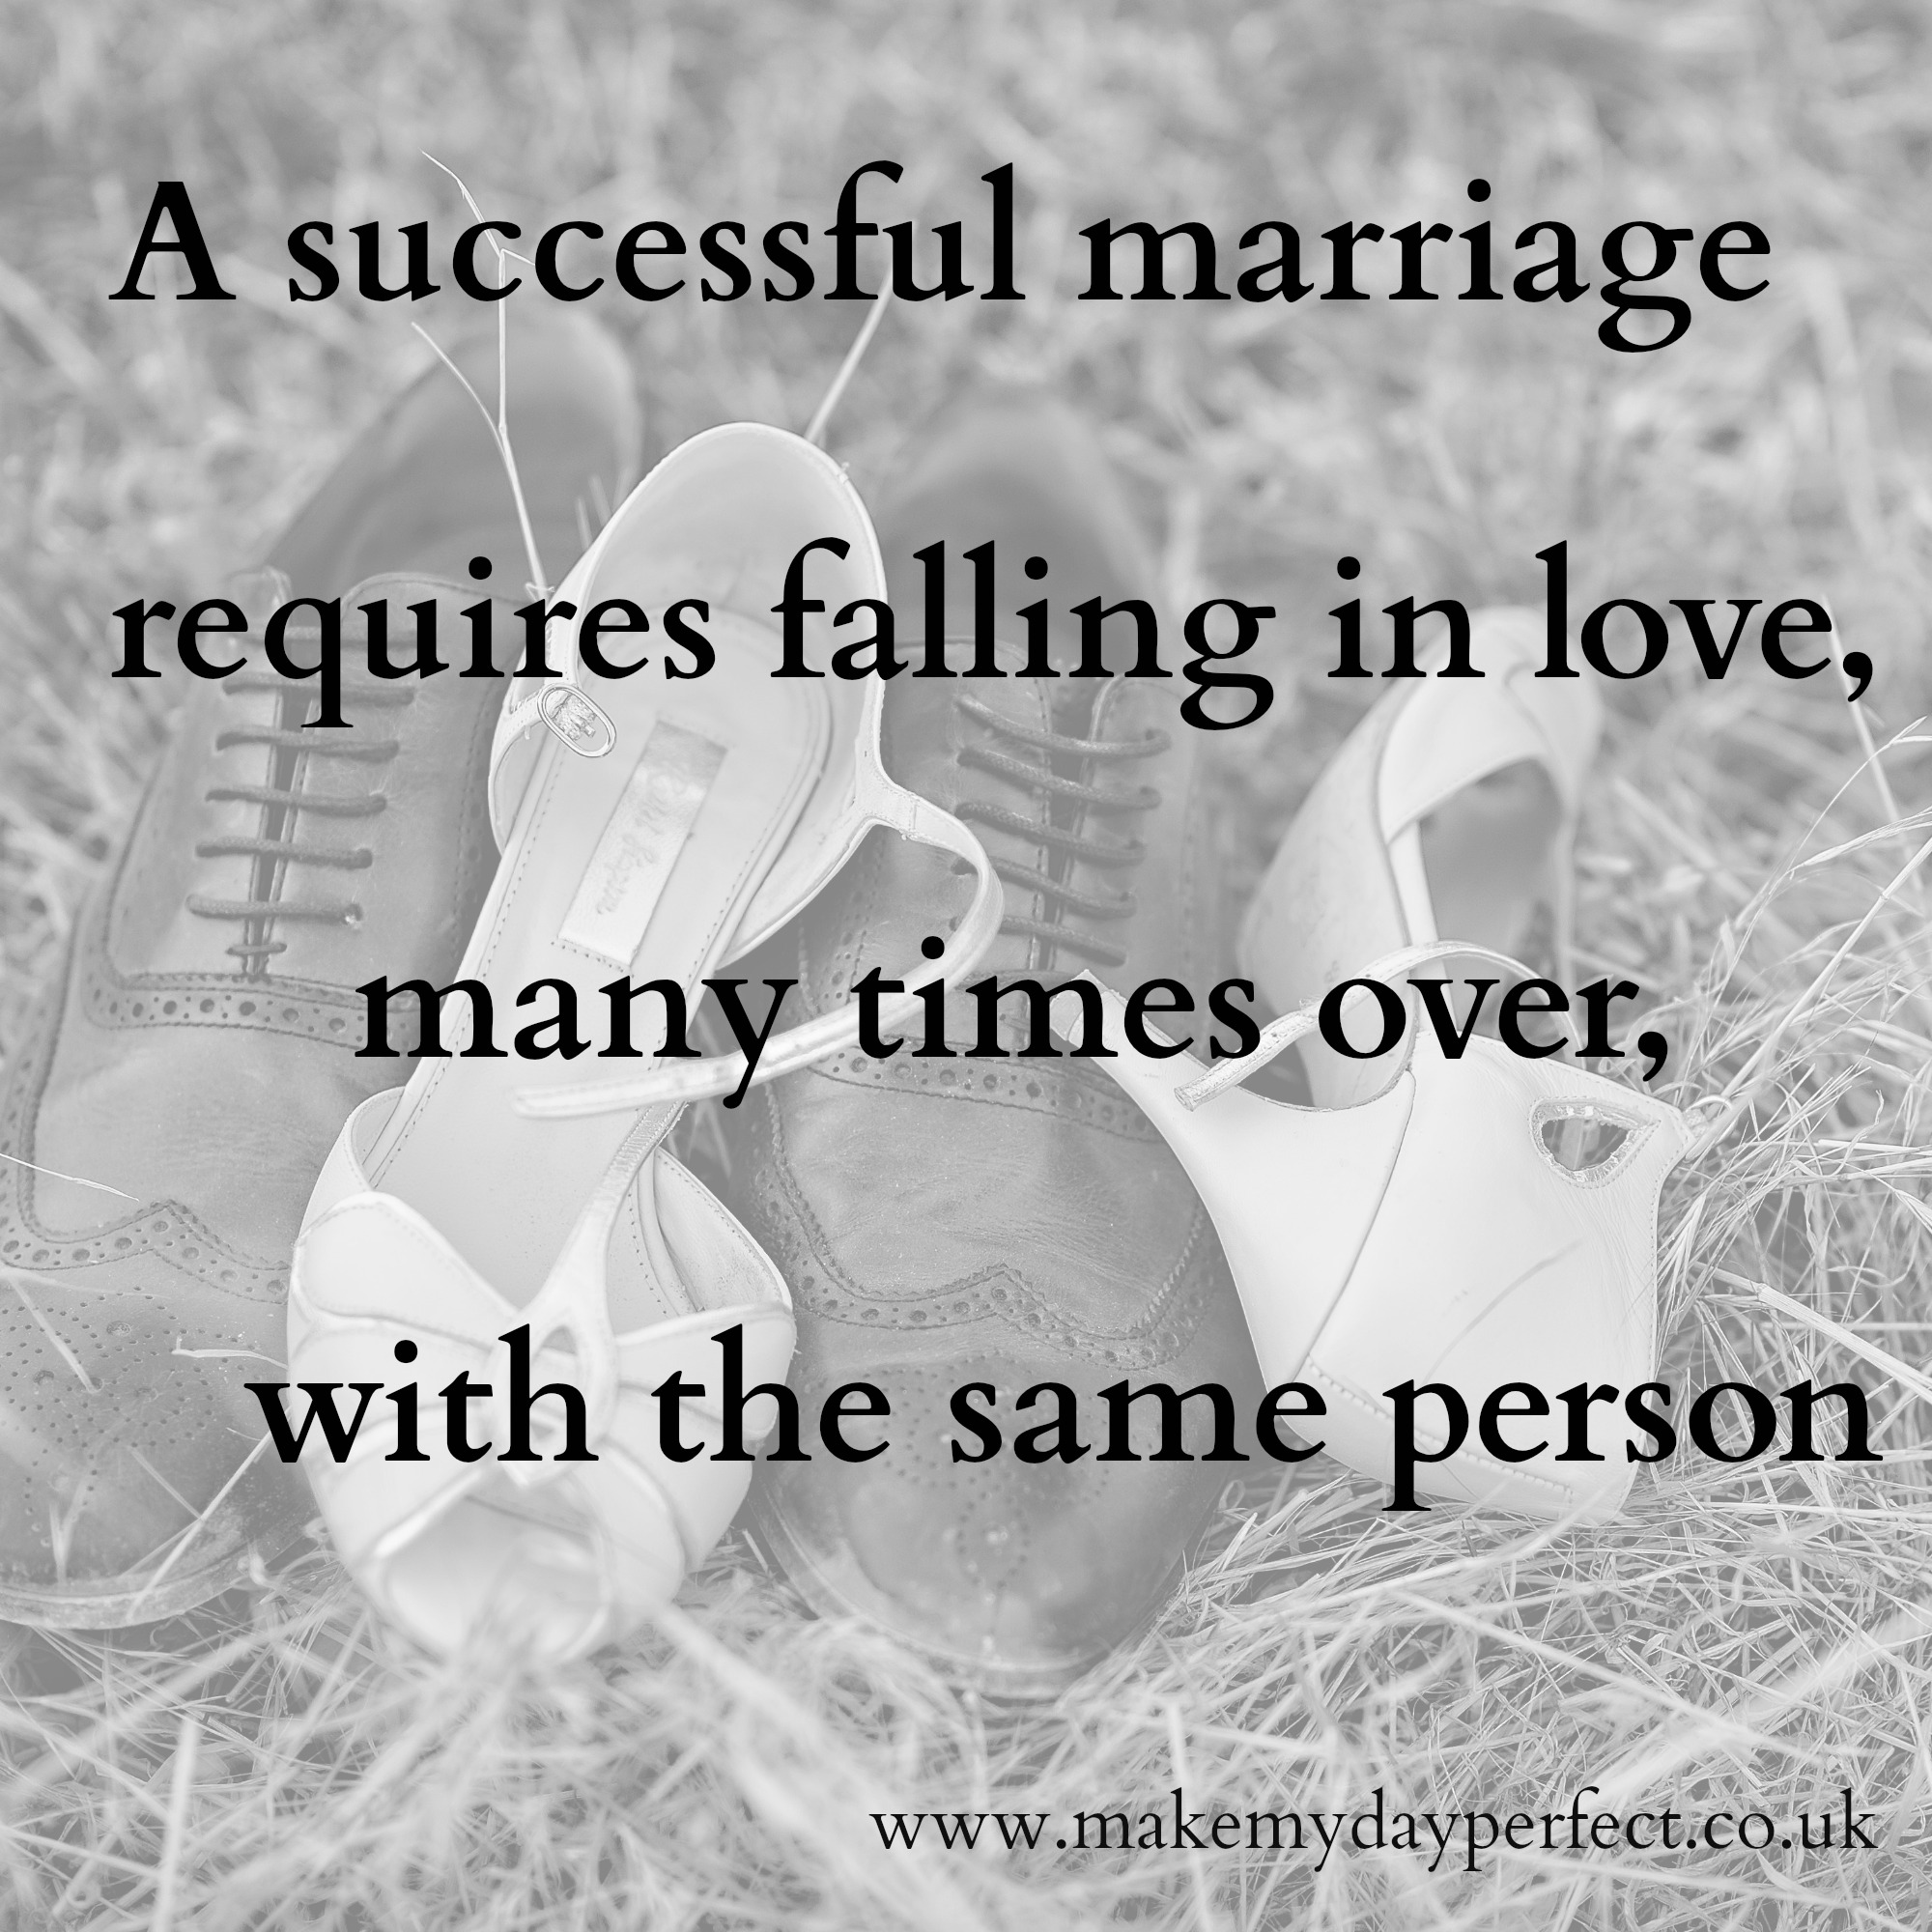 Quotes You Make Me Smile Top 5 Marriage Quotes That Will Make You Smile  Make My Day Perfect